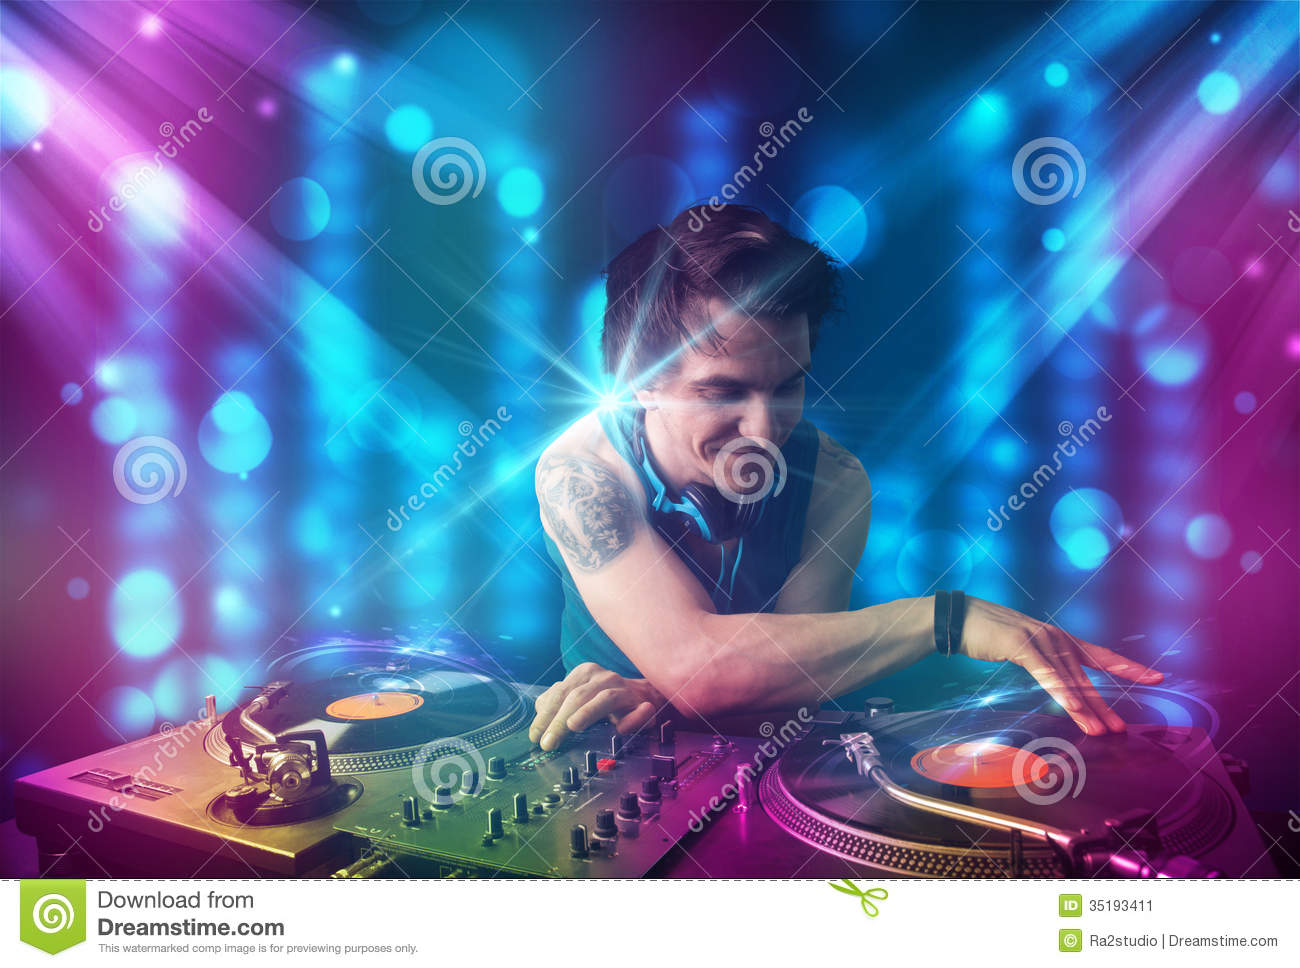 dj mixing music in a club with blue and purple lights stock illustration image 35193411. Black Bedroom Furniture Sets. Home Design Ideas